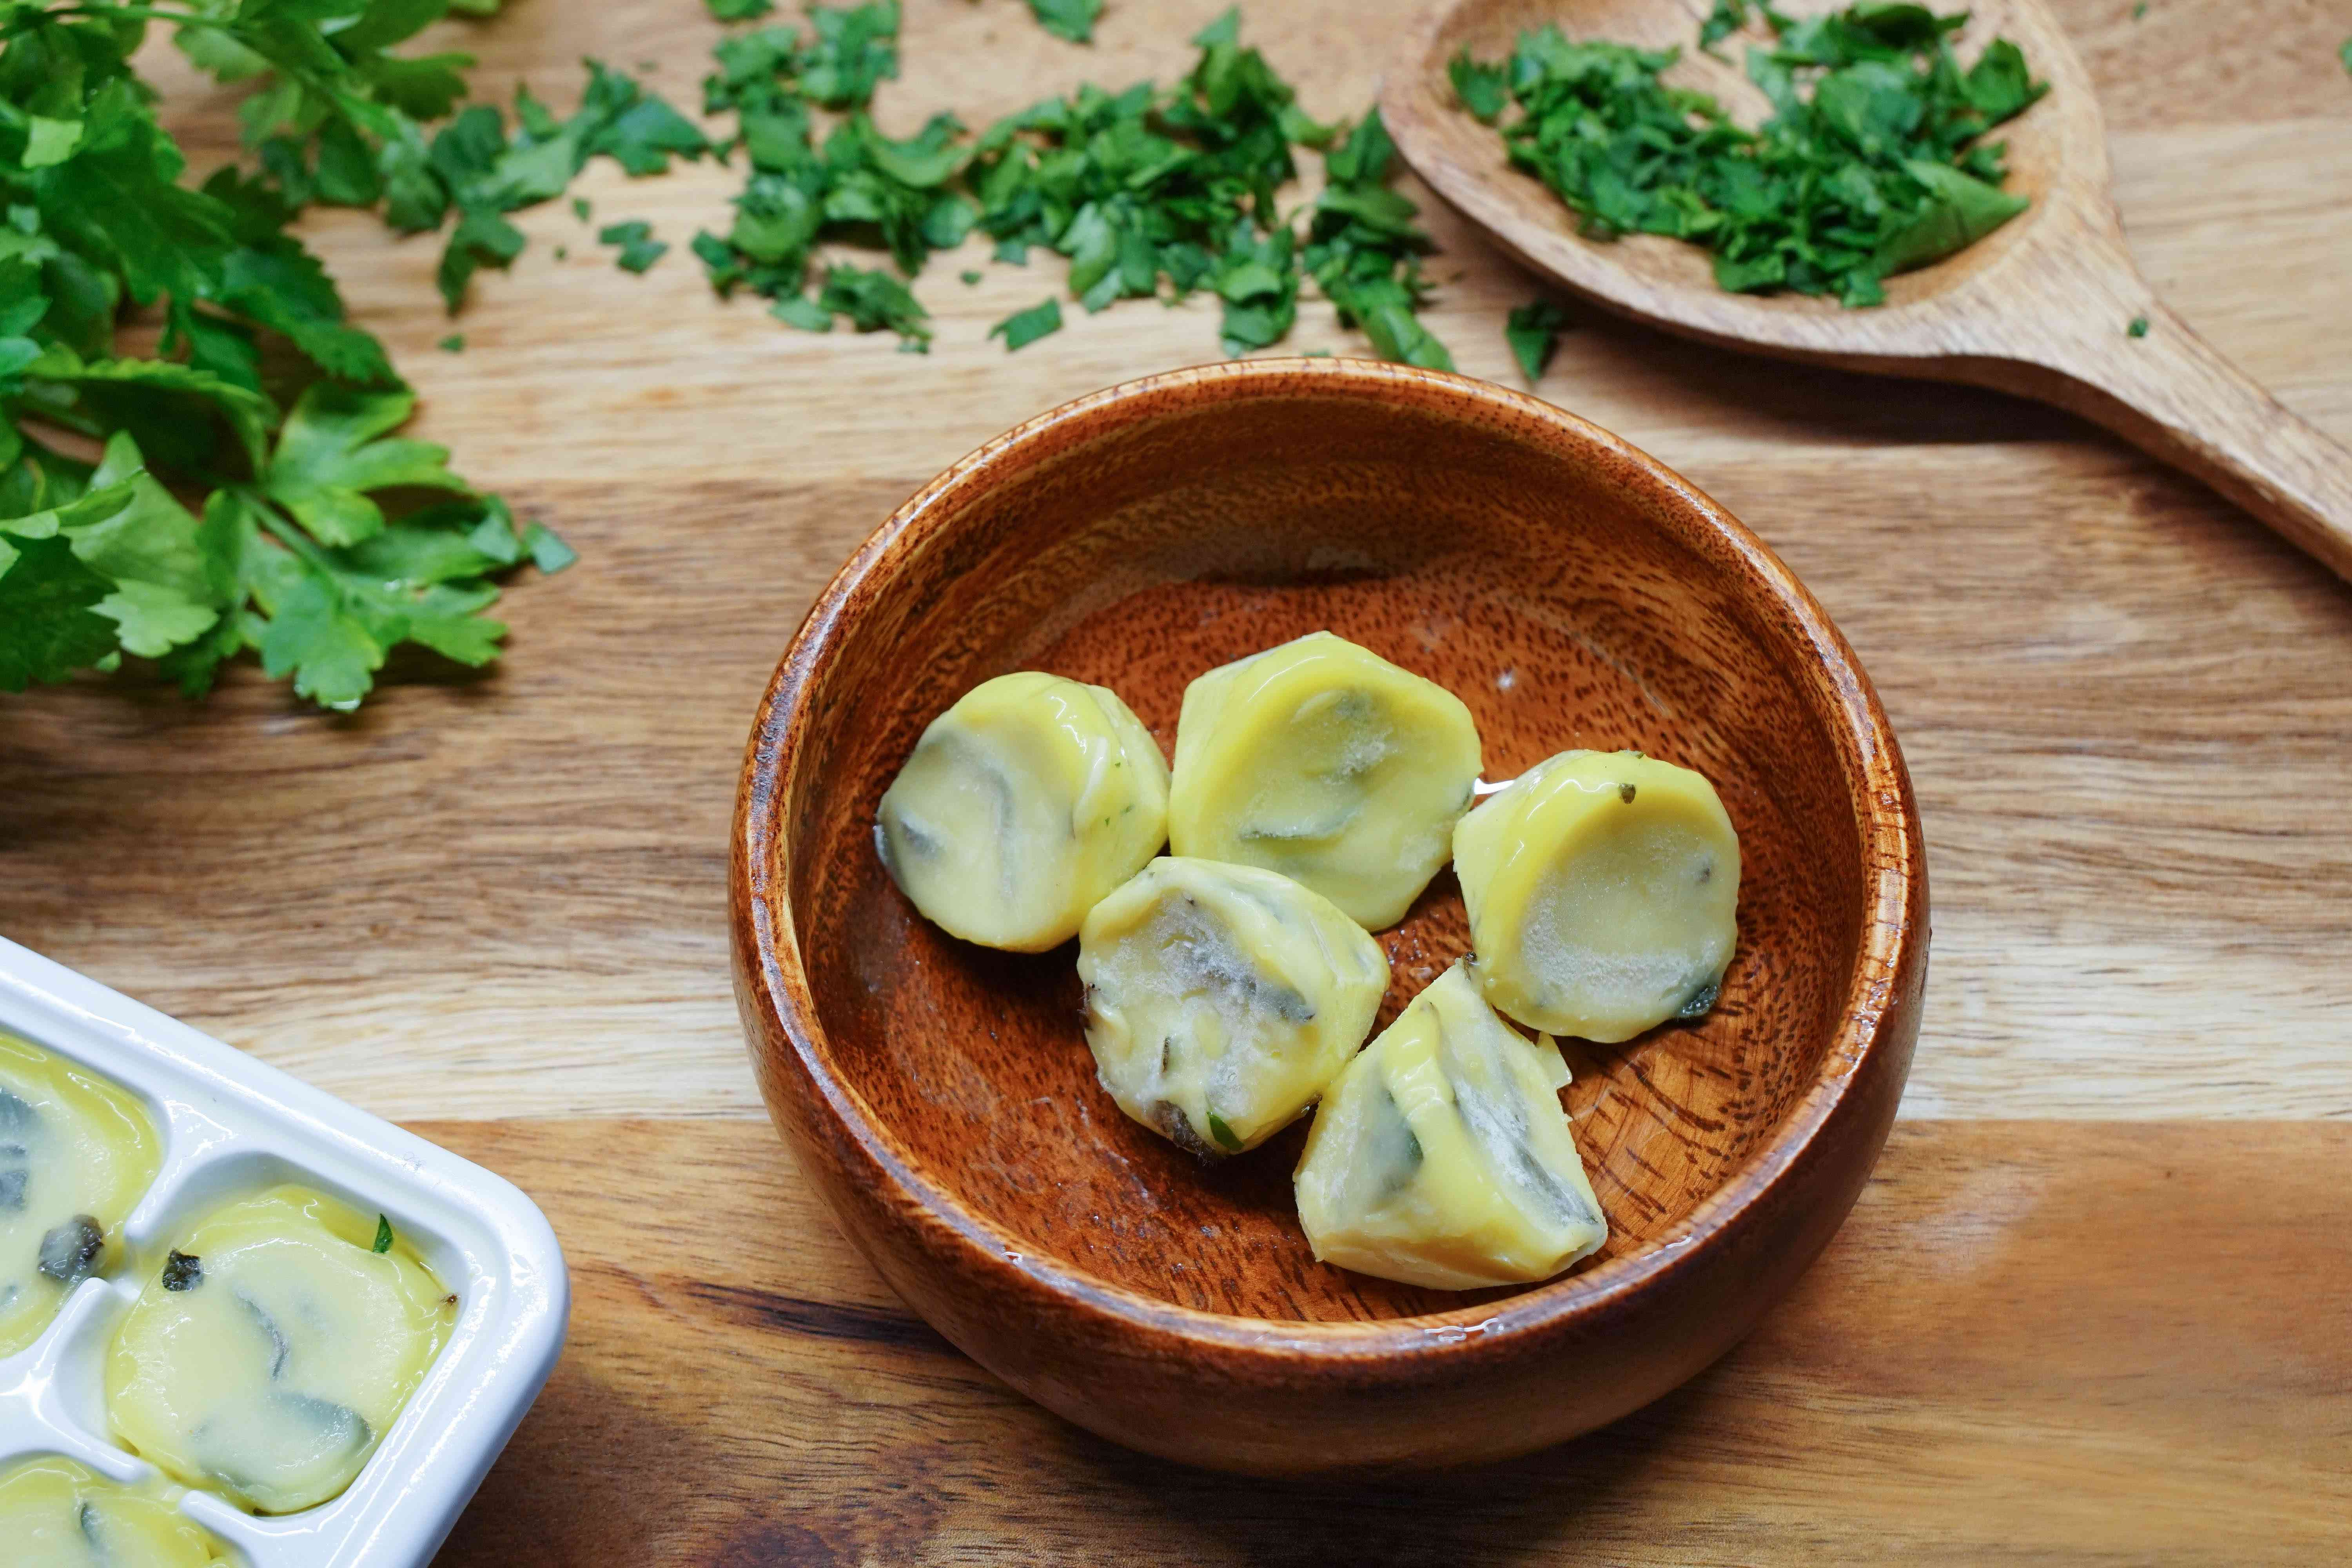 frozen ice cubes of butter and fresh parsley sit in wooden bowl with parsley scattered nearby